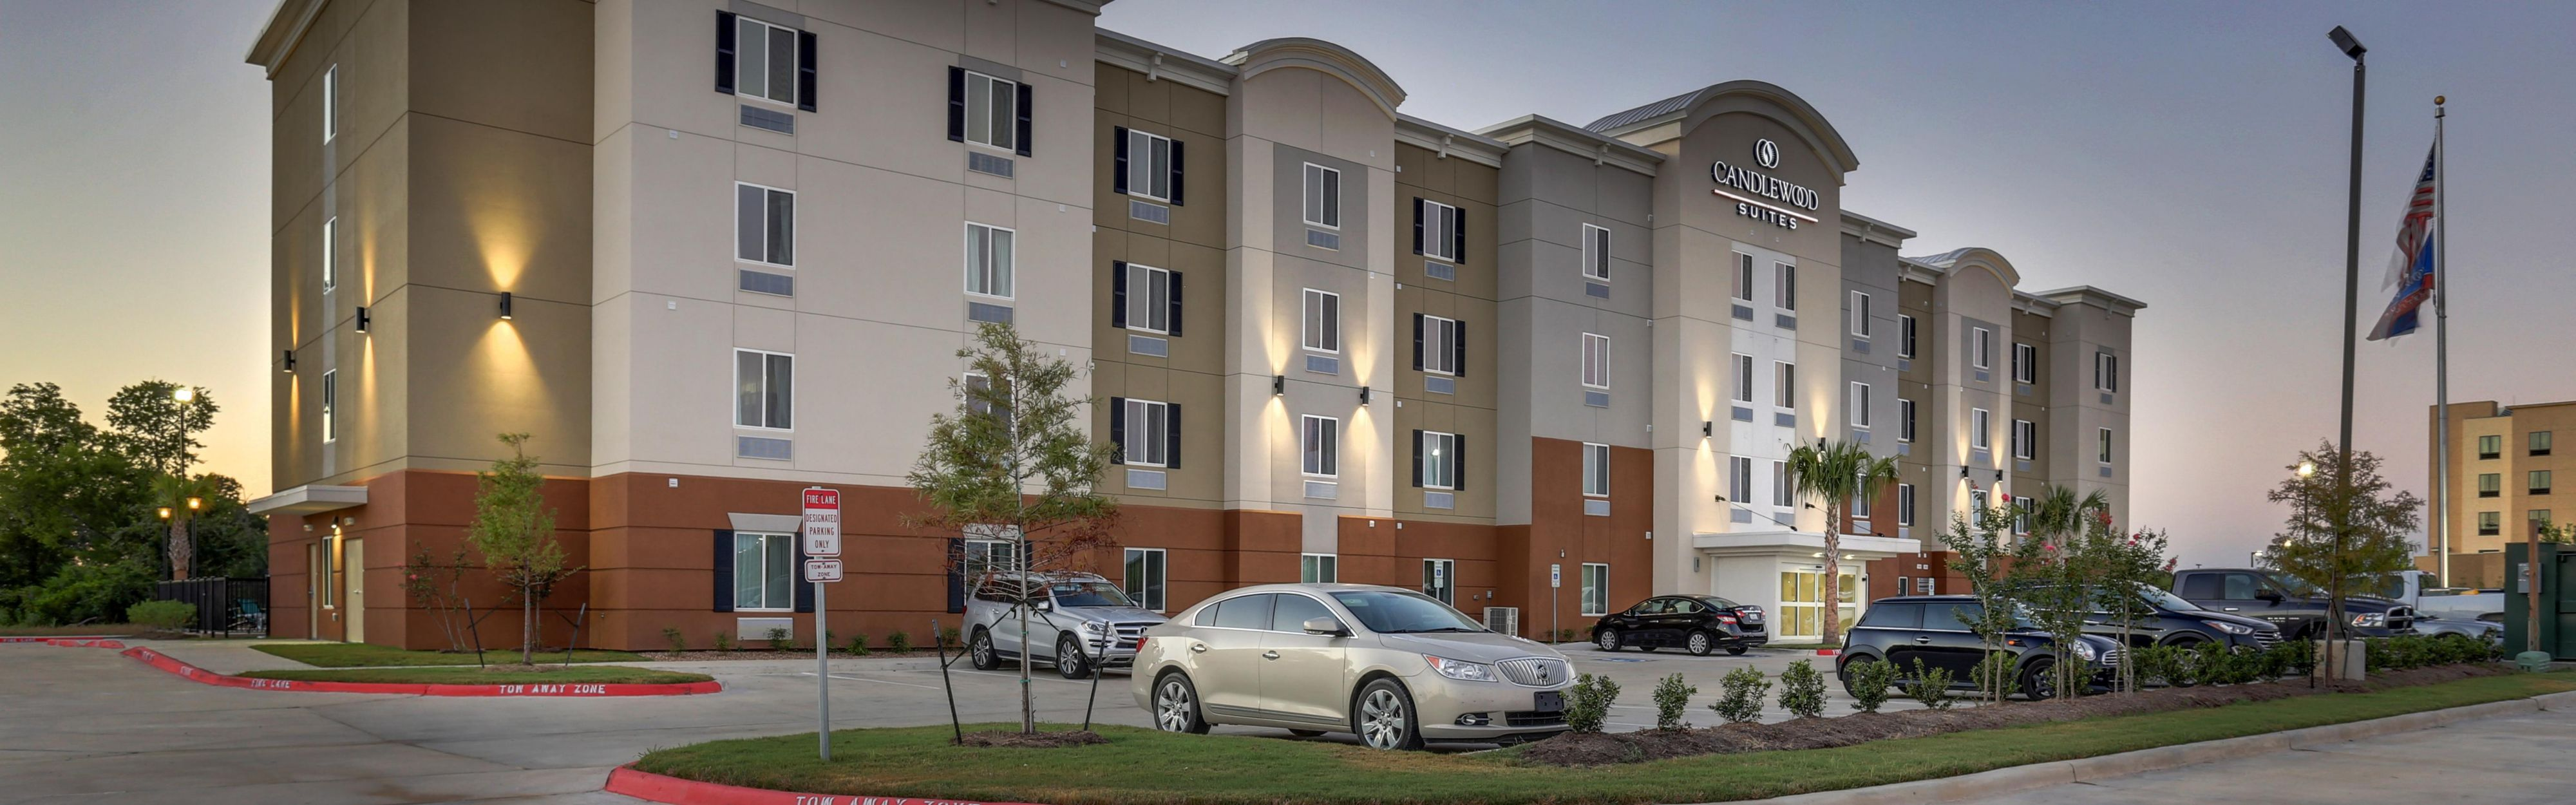 Candlewood Suites College Station at University image 0